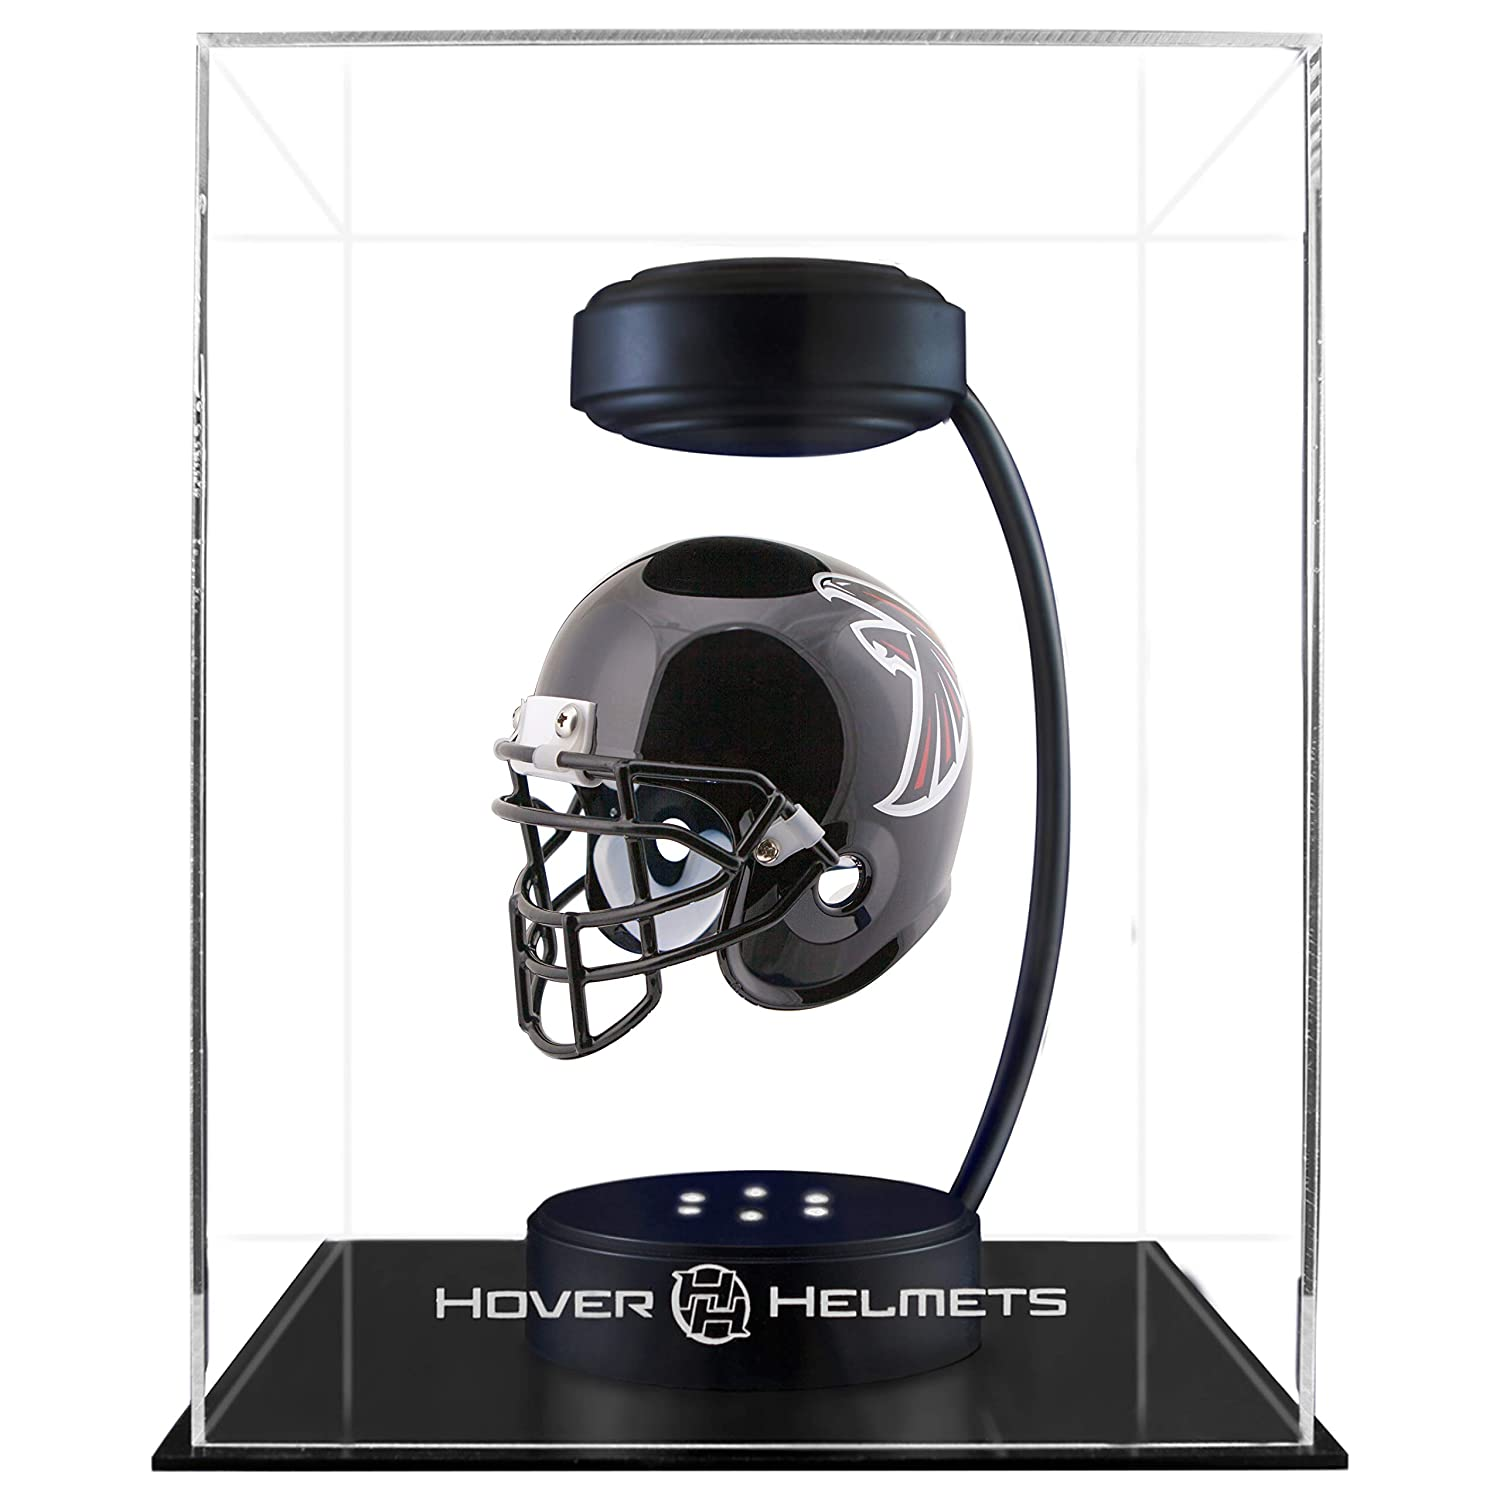 b8ff5b4fb5c Hover Helmets NFL Unisex NFL Collectible Levitating Football Helmet with  Electromagnetic Stand Atlanta Falcons- Team larger image